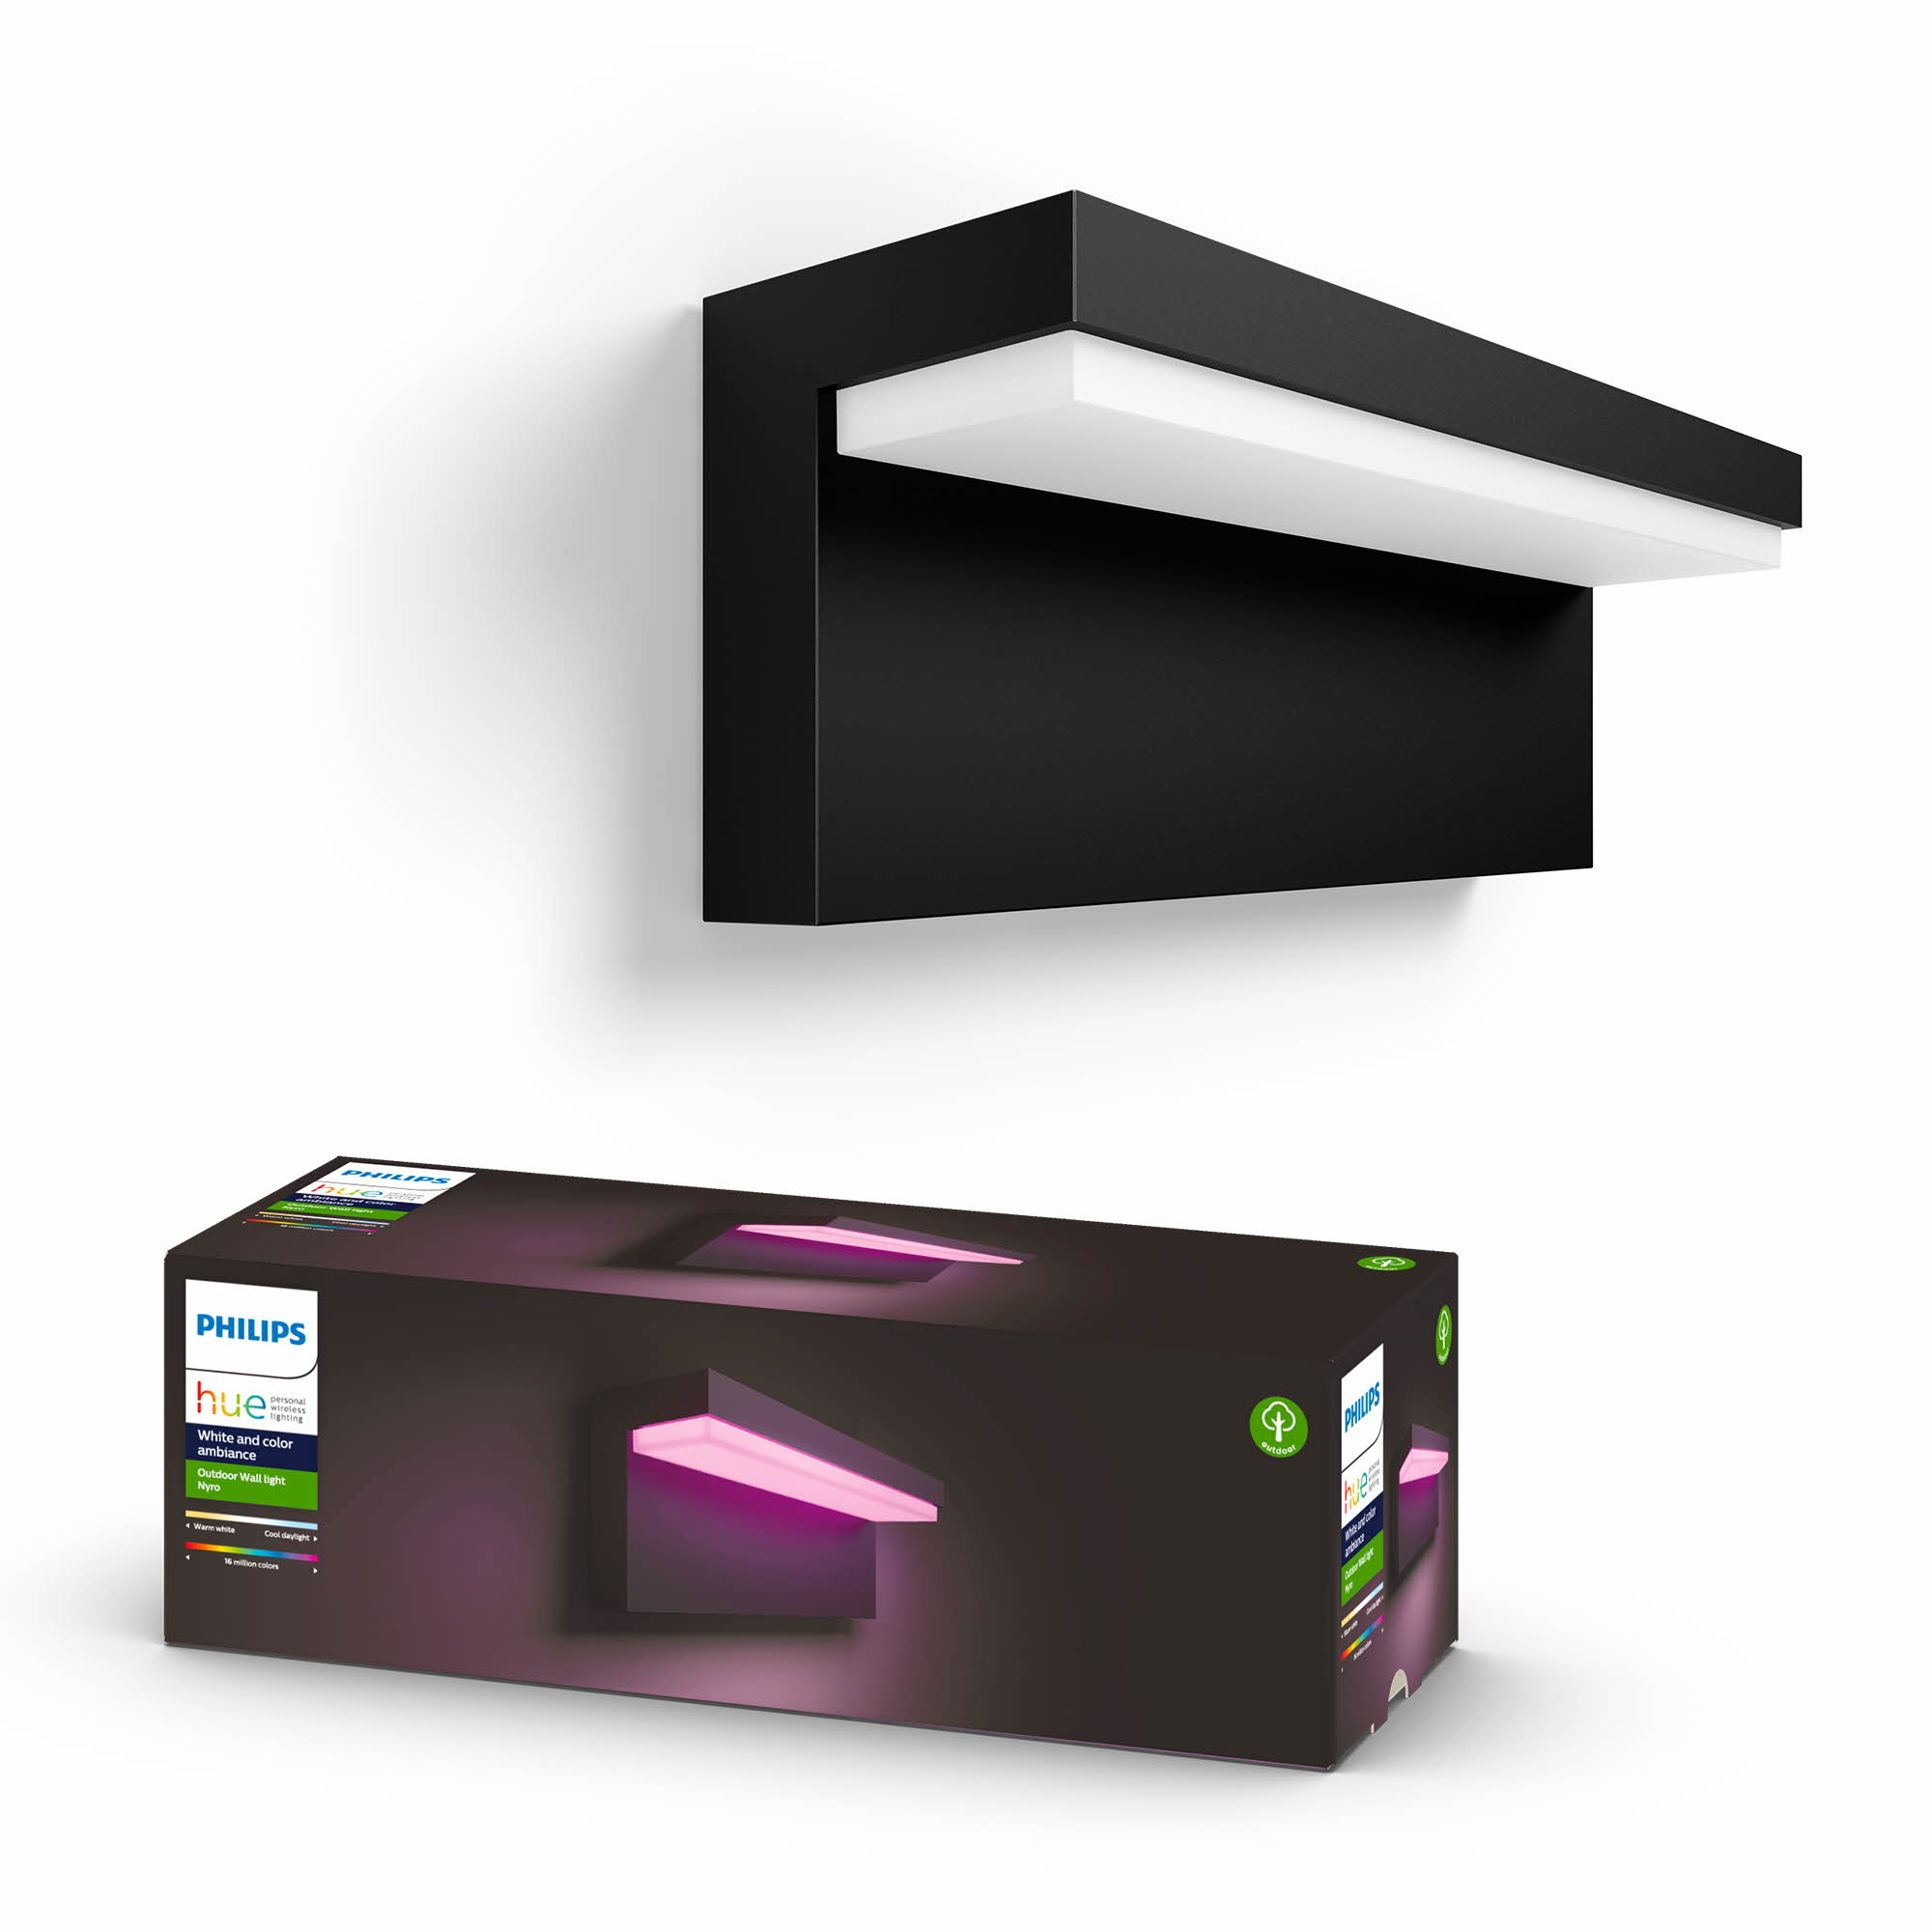 Philips Hue - Nyro Outdoor Wall Light - White & Colour Ambiance